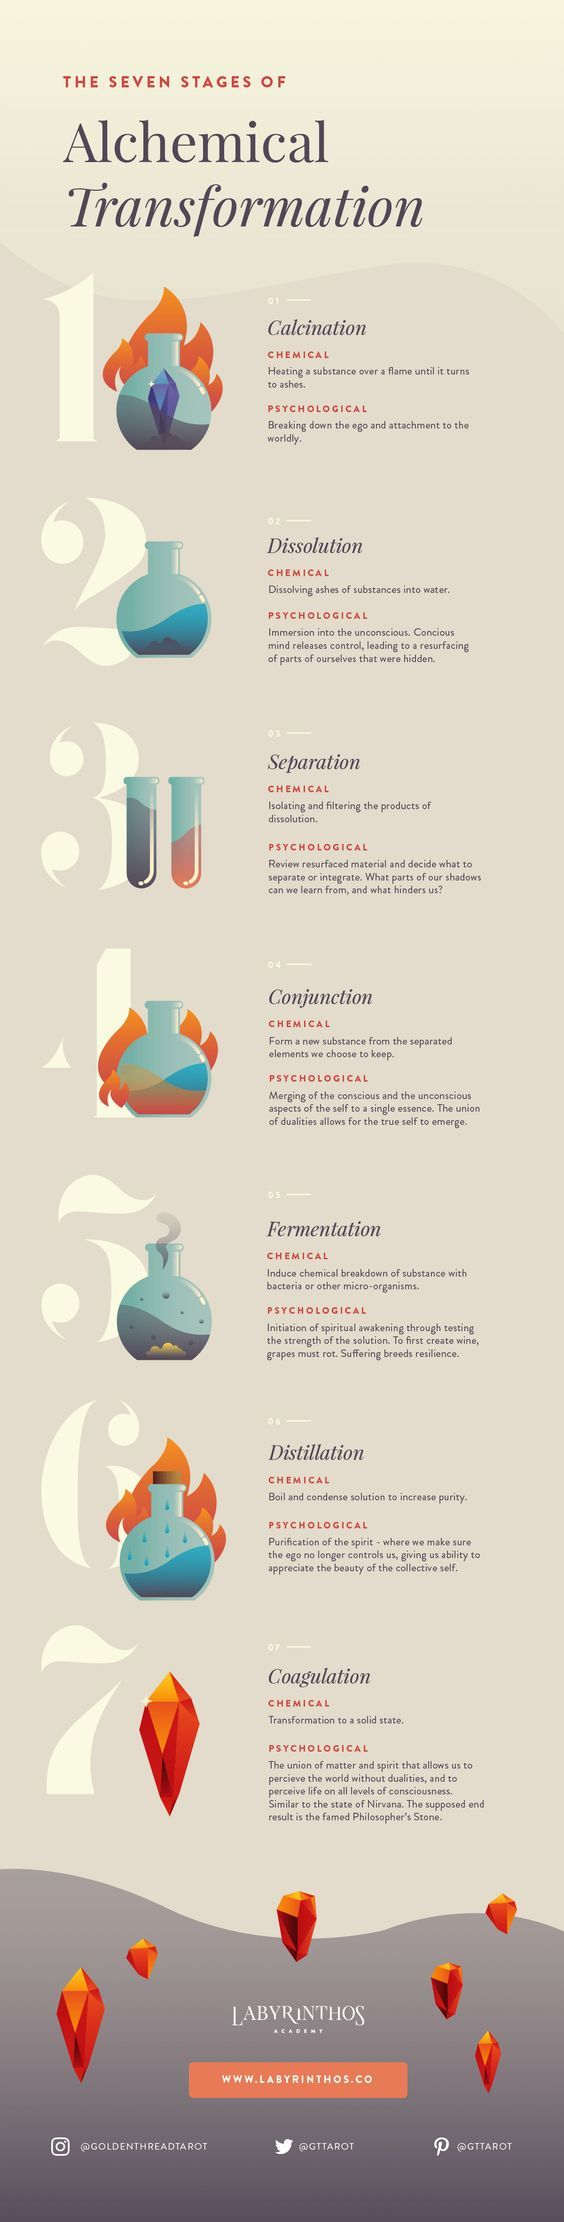 The Seven Stages of Alchemical Transformation - Alchemy Infographic, Spiritual Lesson, Spiritual Infographic, Occult Infographic, Witchcraft Infographic